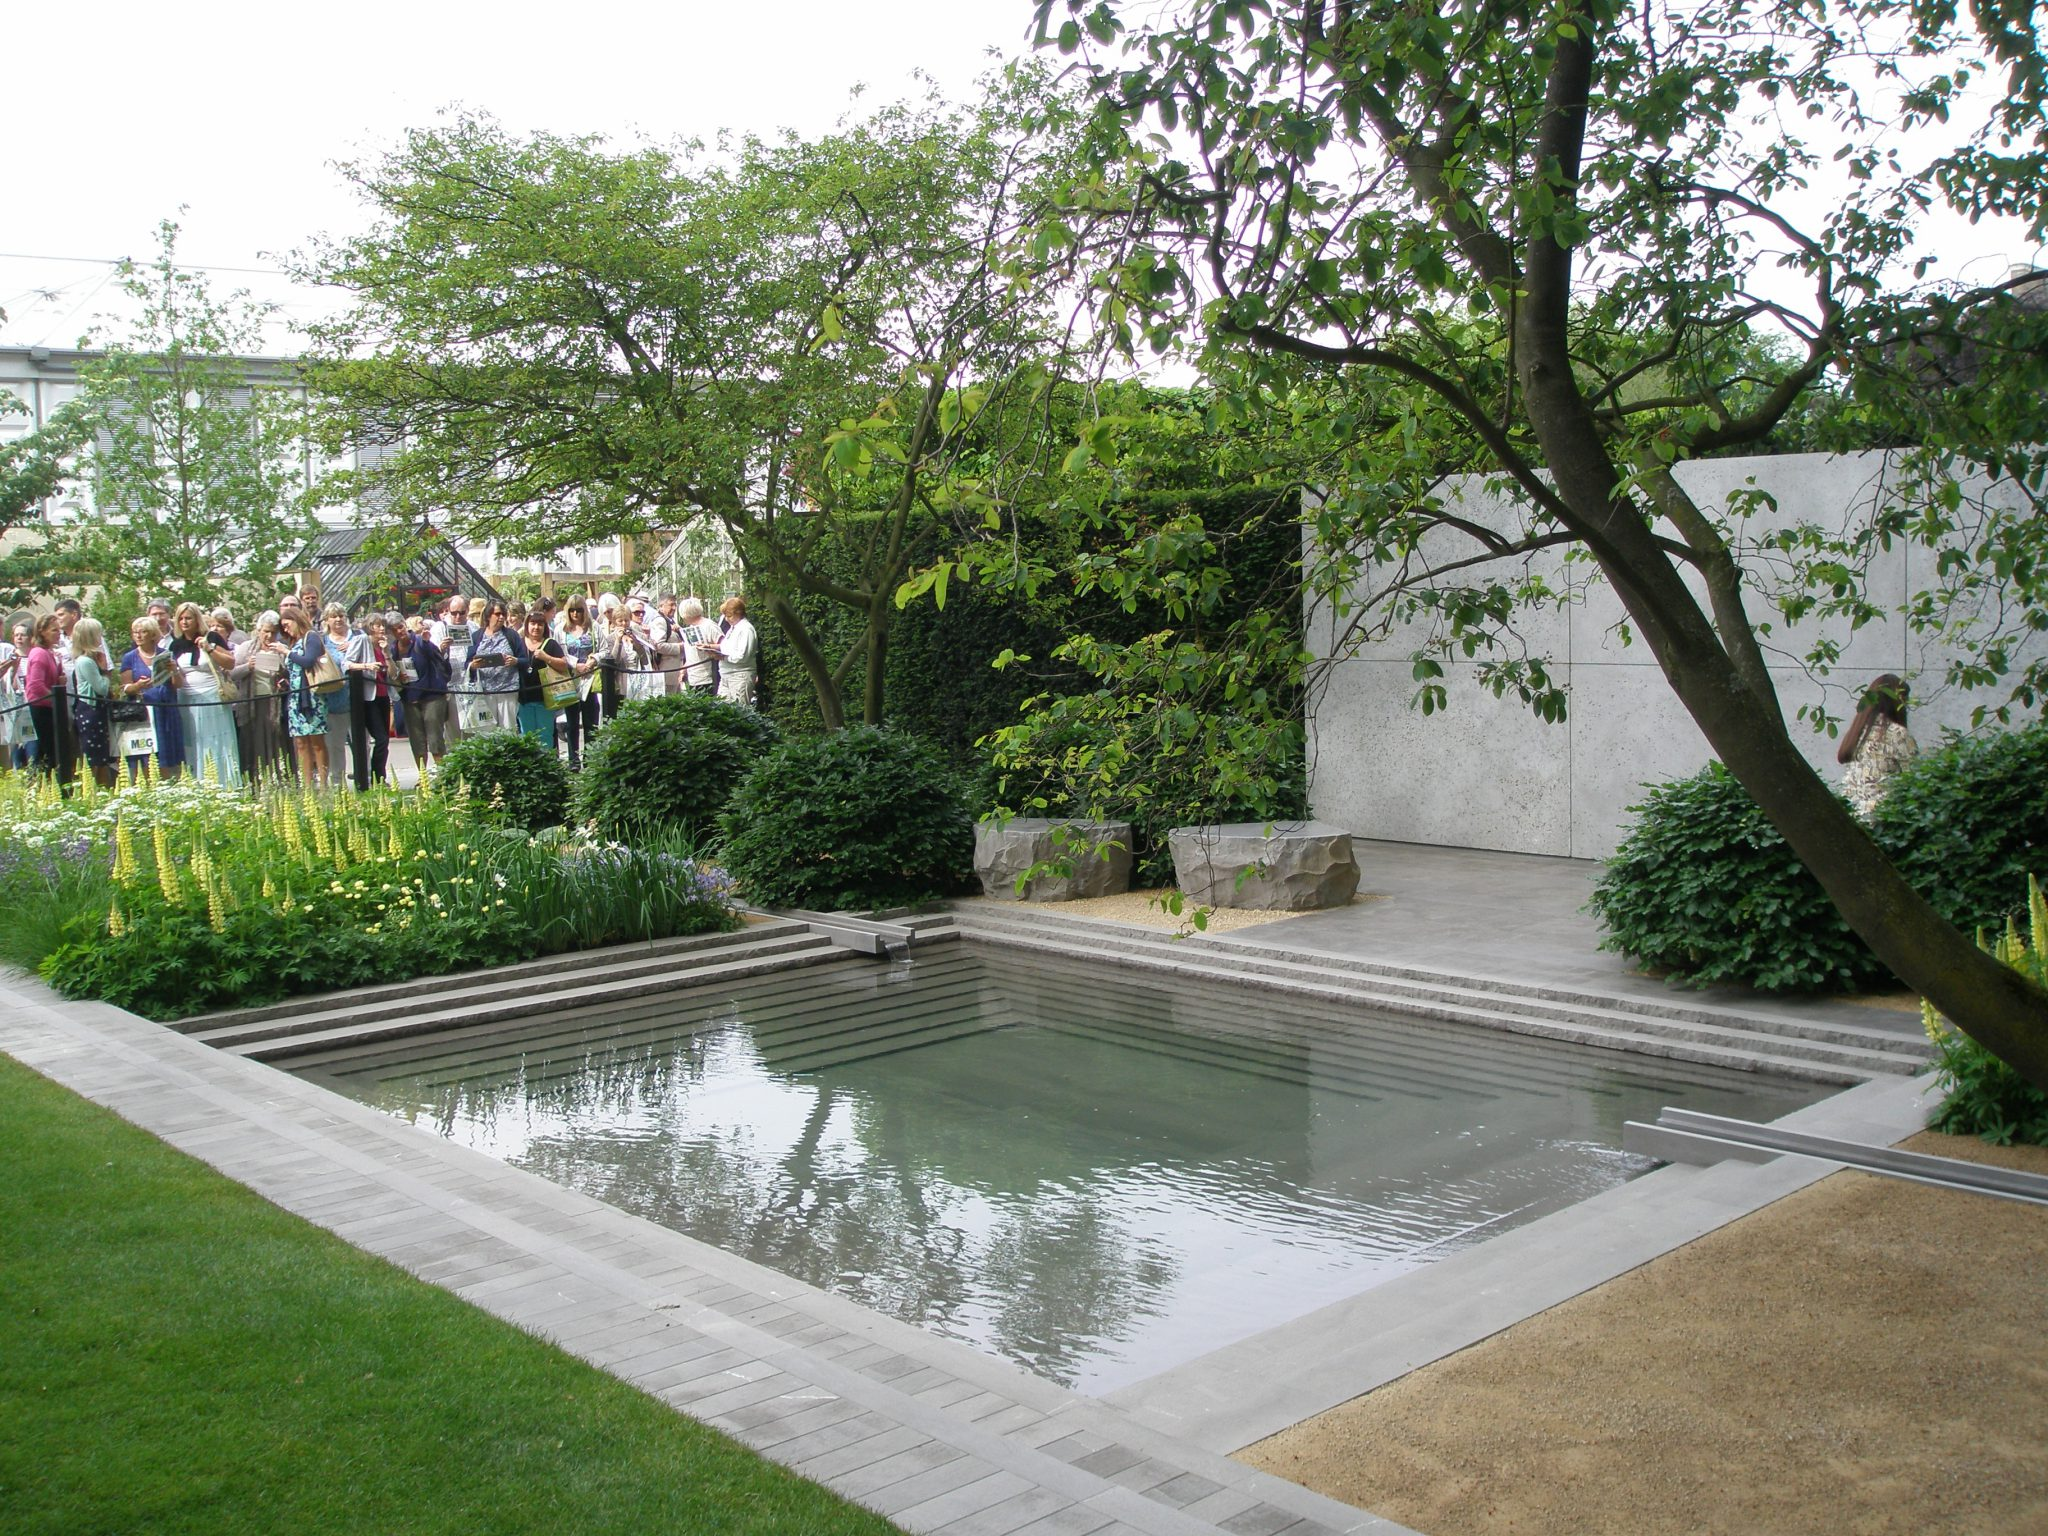 The Laurent-Perrier Garden. Given a Gold Medal, and also declared by the RHS to be the Best Show Garden of 2014.